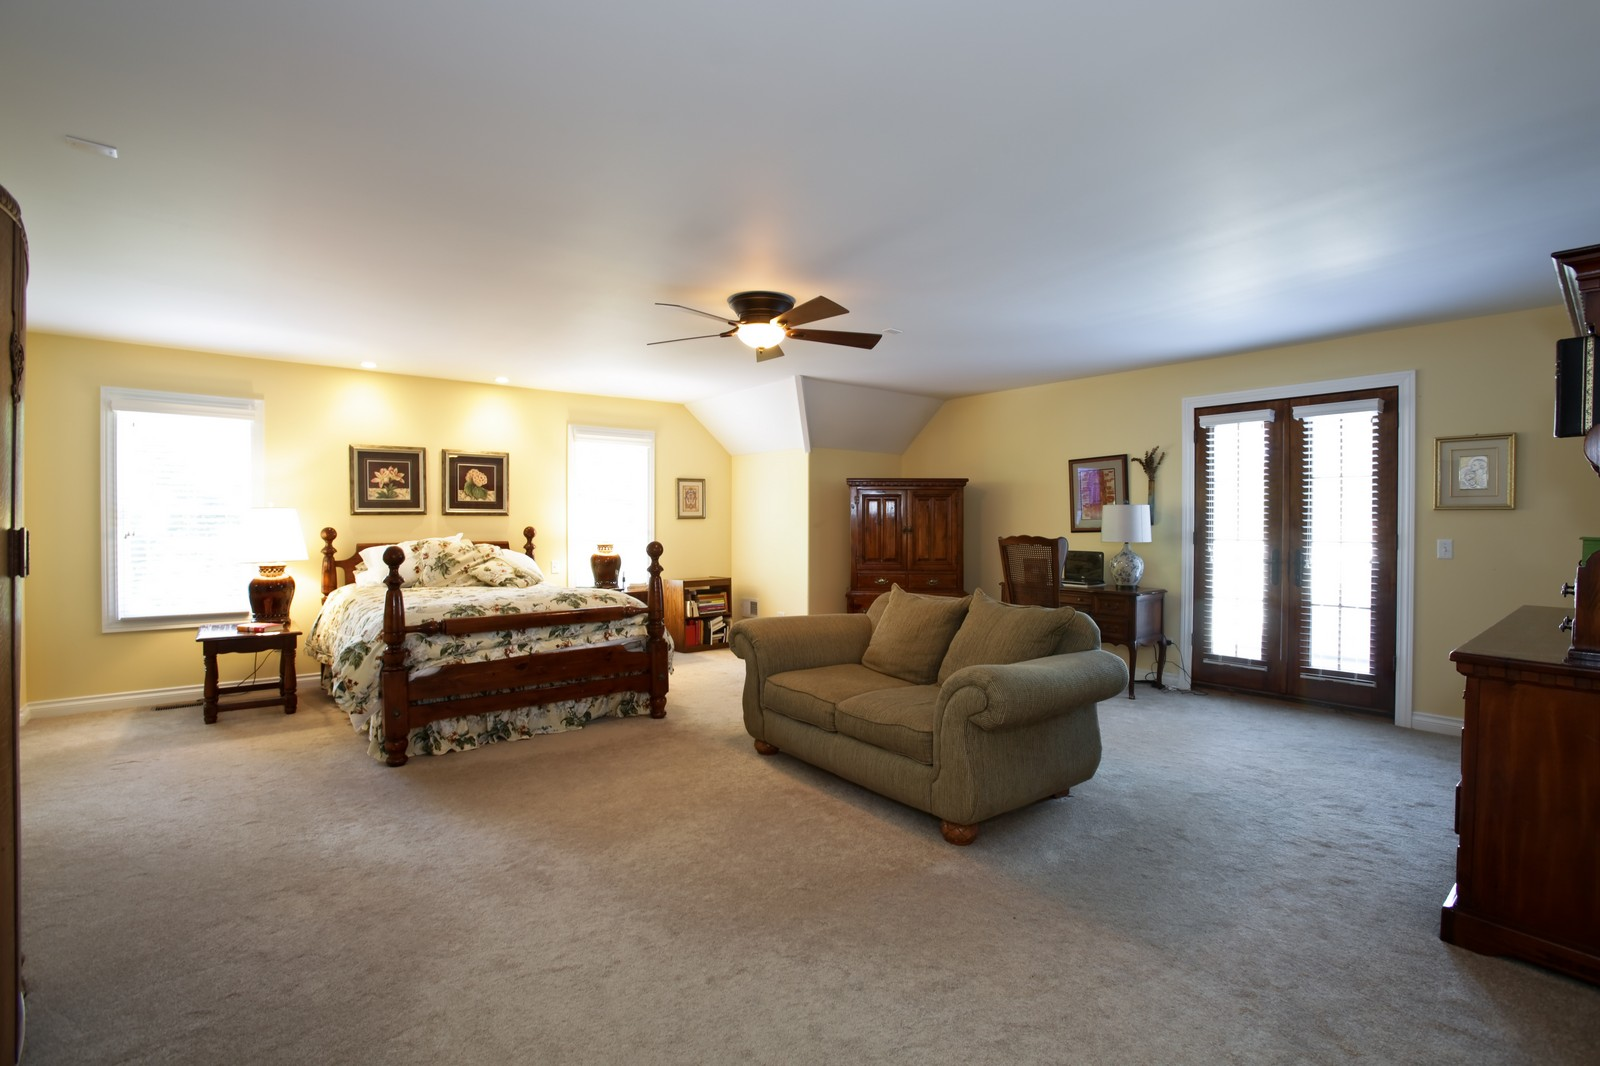 Real Estate Photography - 4740 Saratoga, Downers Grove, IL, 60515 - Master Bedroom